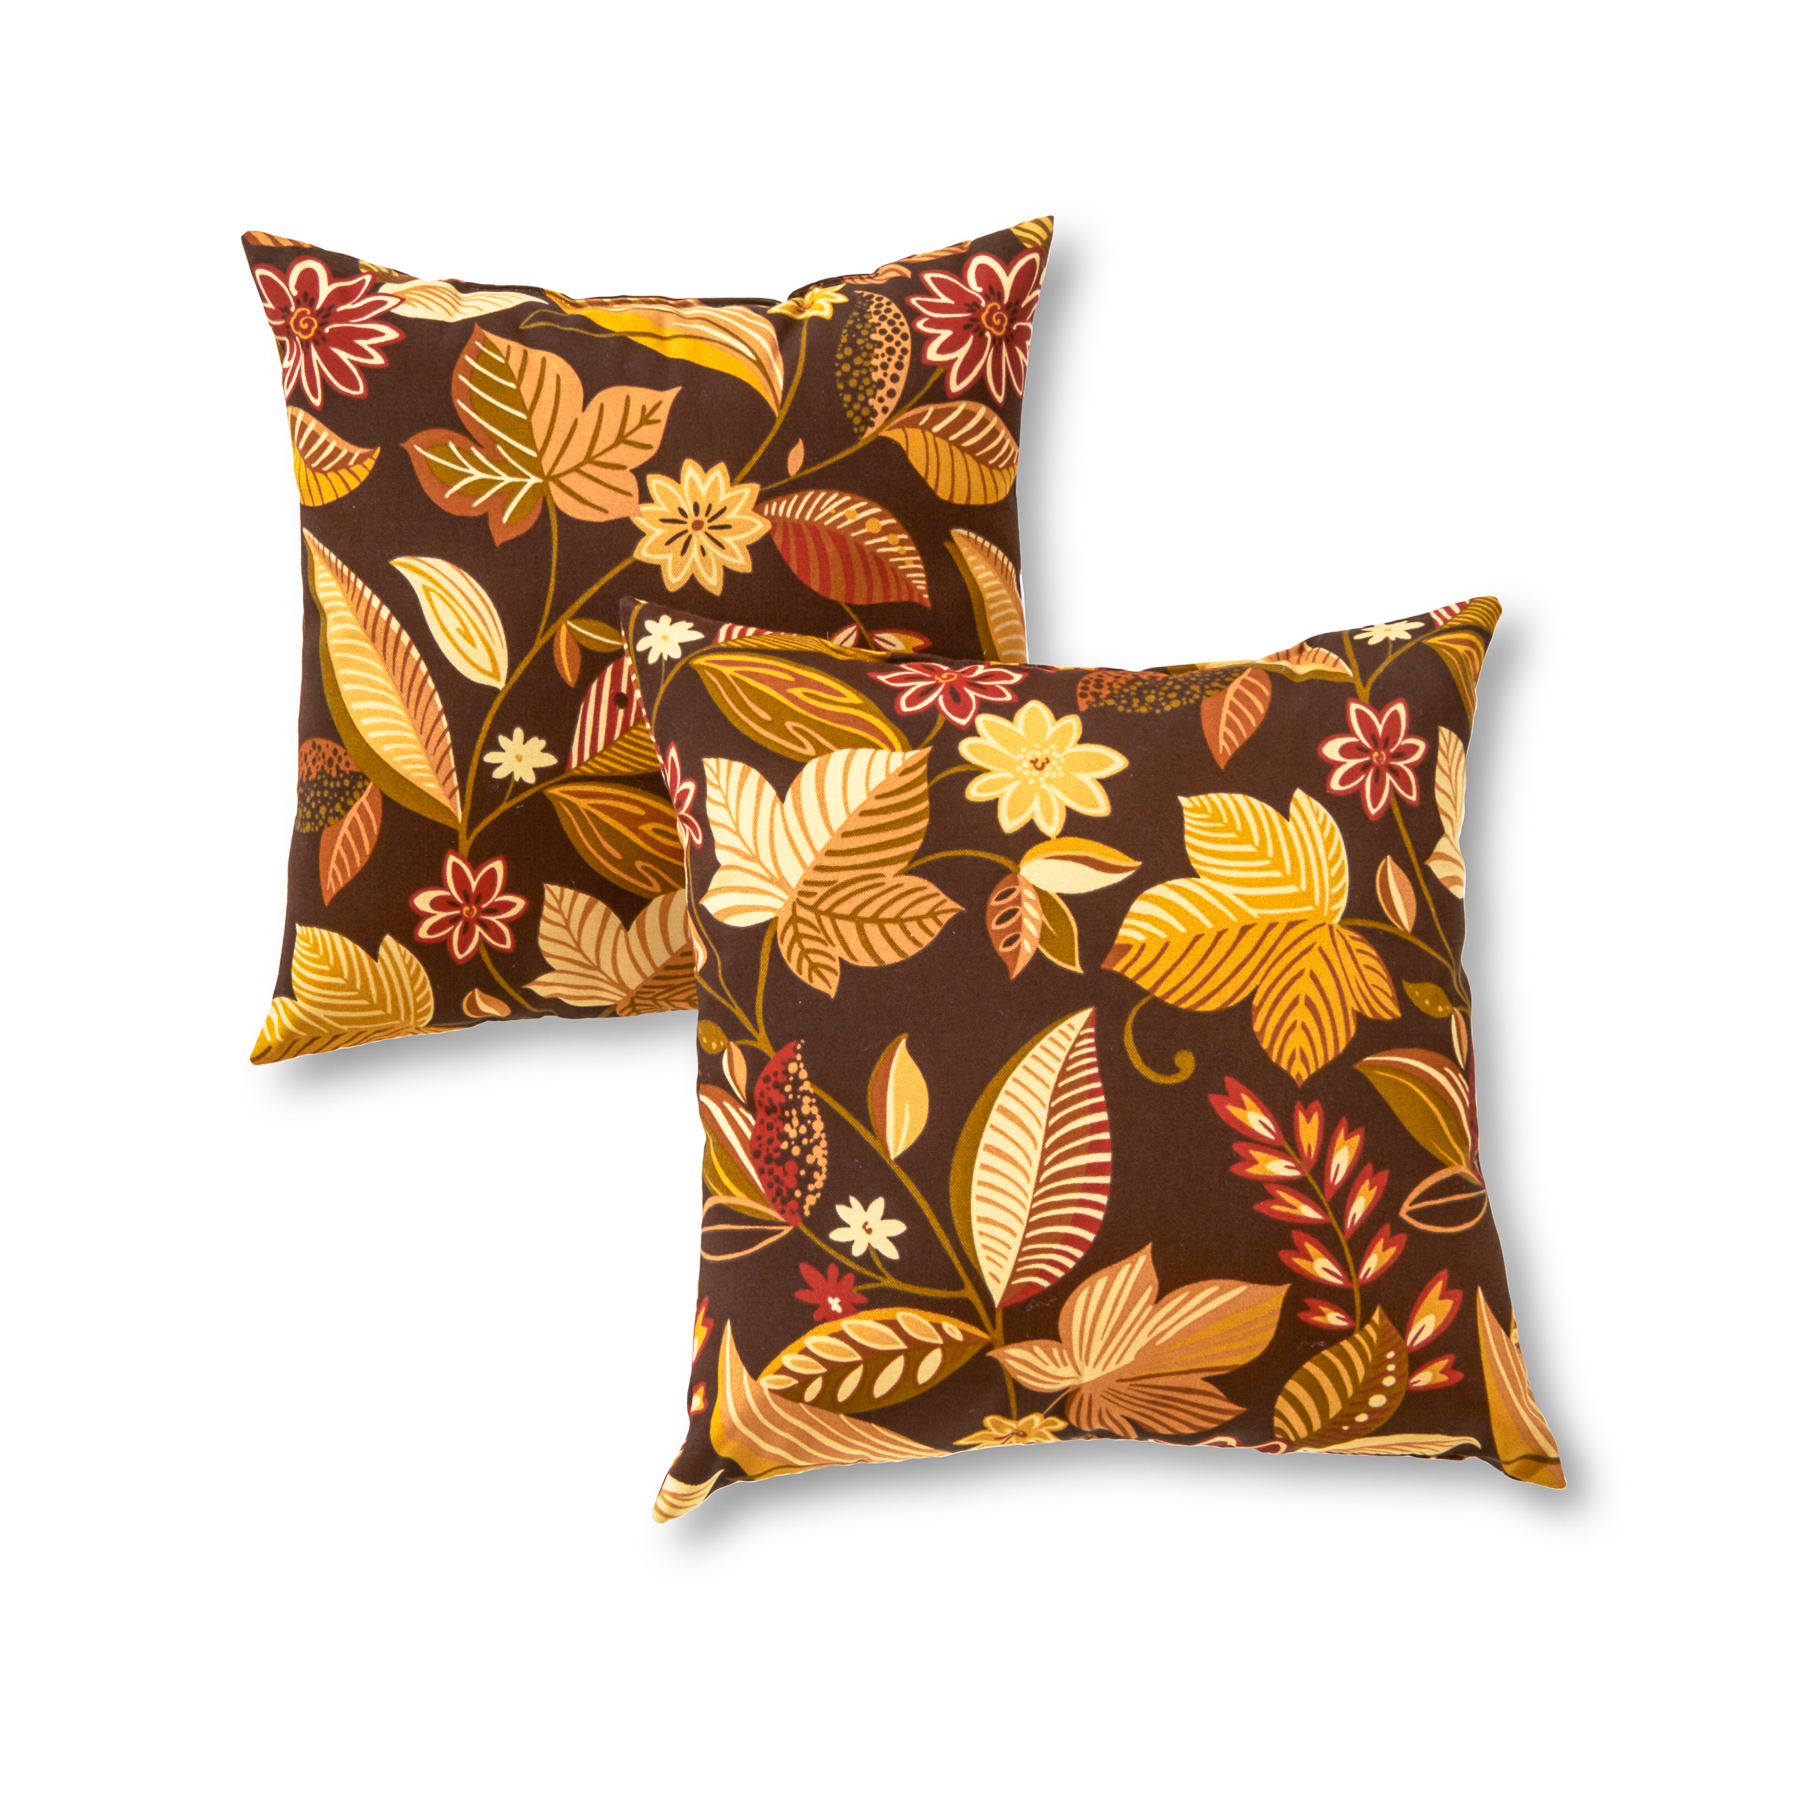 Greendale Home Fashions Timberland Floral Outdoor Accent Pillow, Set of 2